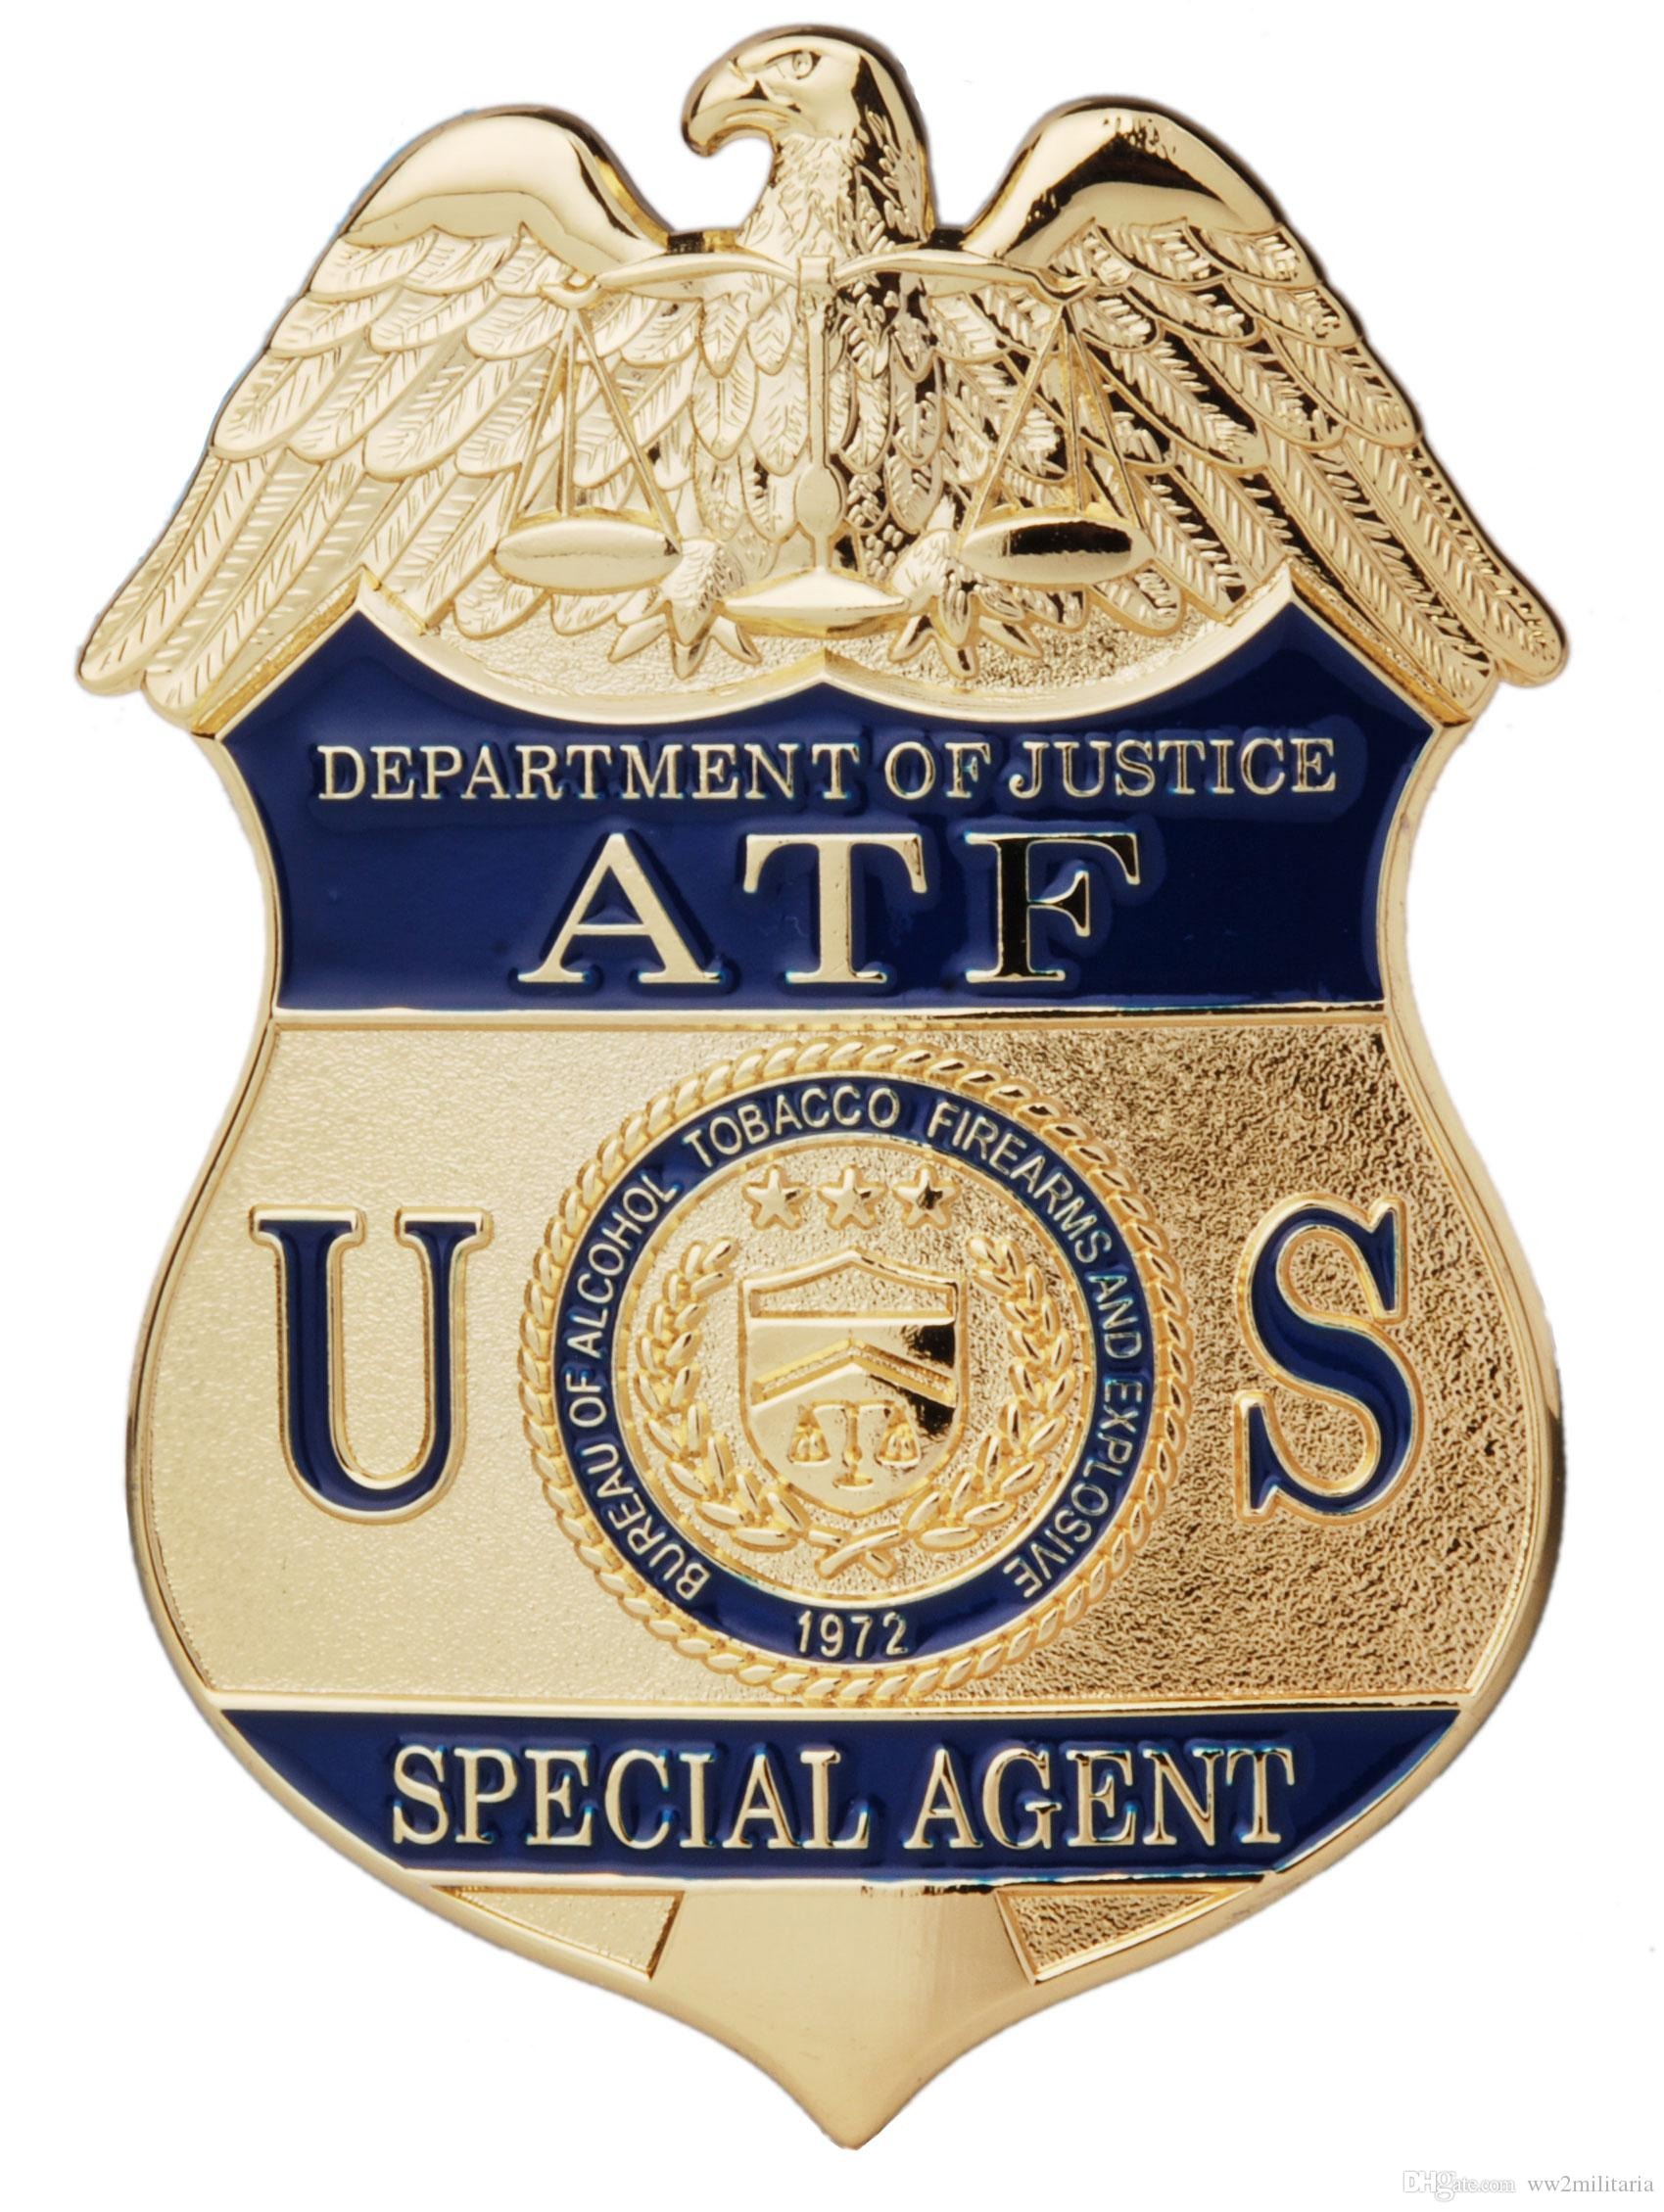 us department of justice atf special agent metal badge lapel pin 32700 metal badge online with. Black Bedroom Furniture Sets. Home Design Ideas